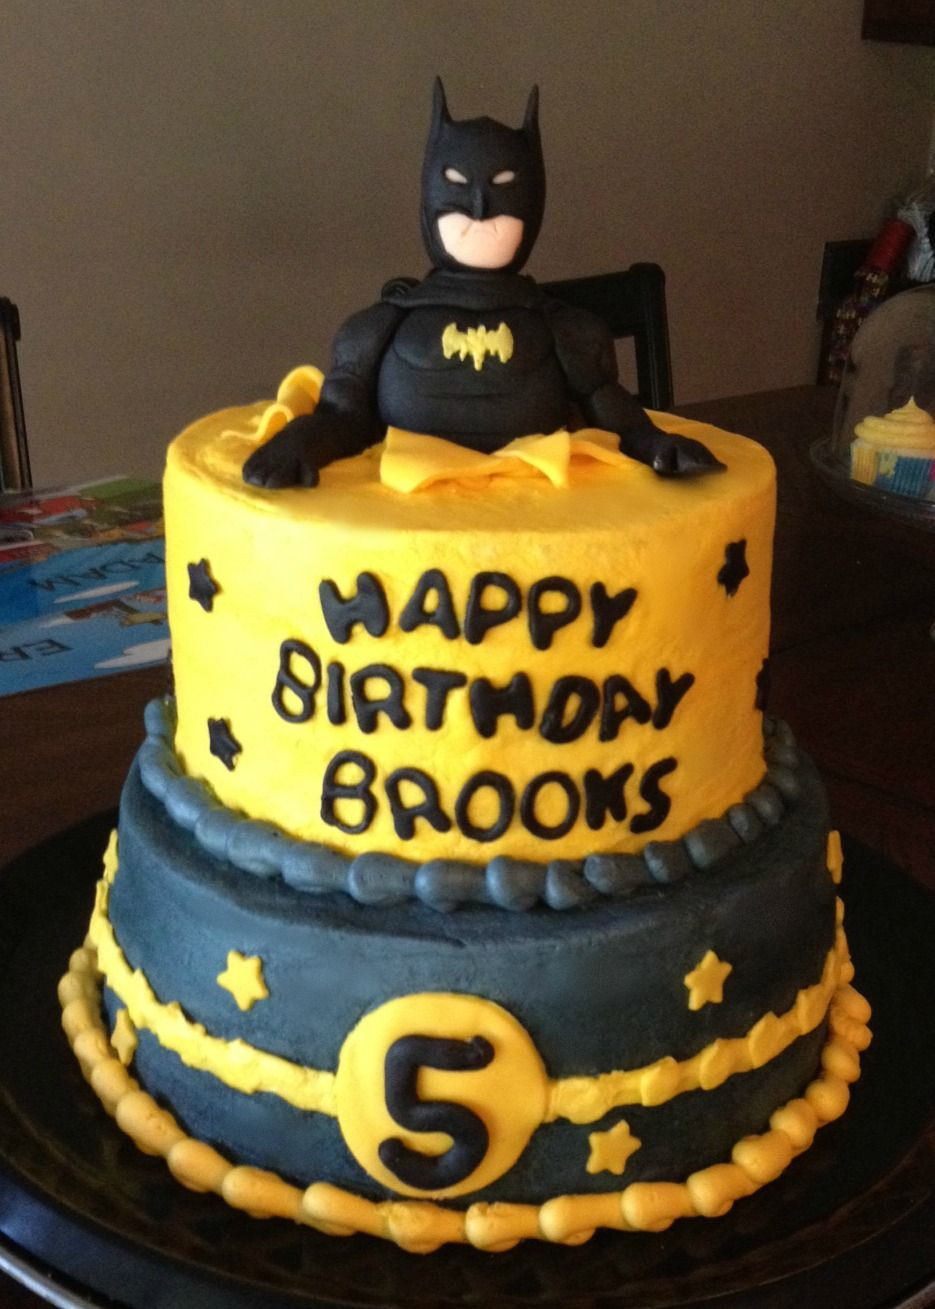 Cake Designs Batman : Batman Cake Birthday cake ideas Pinterest